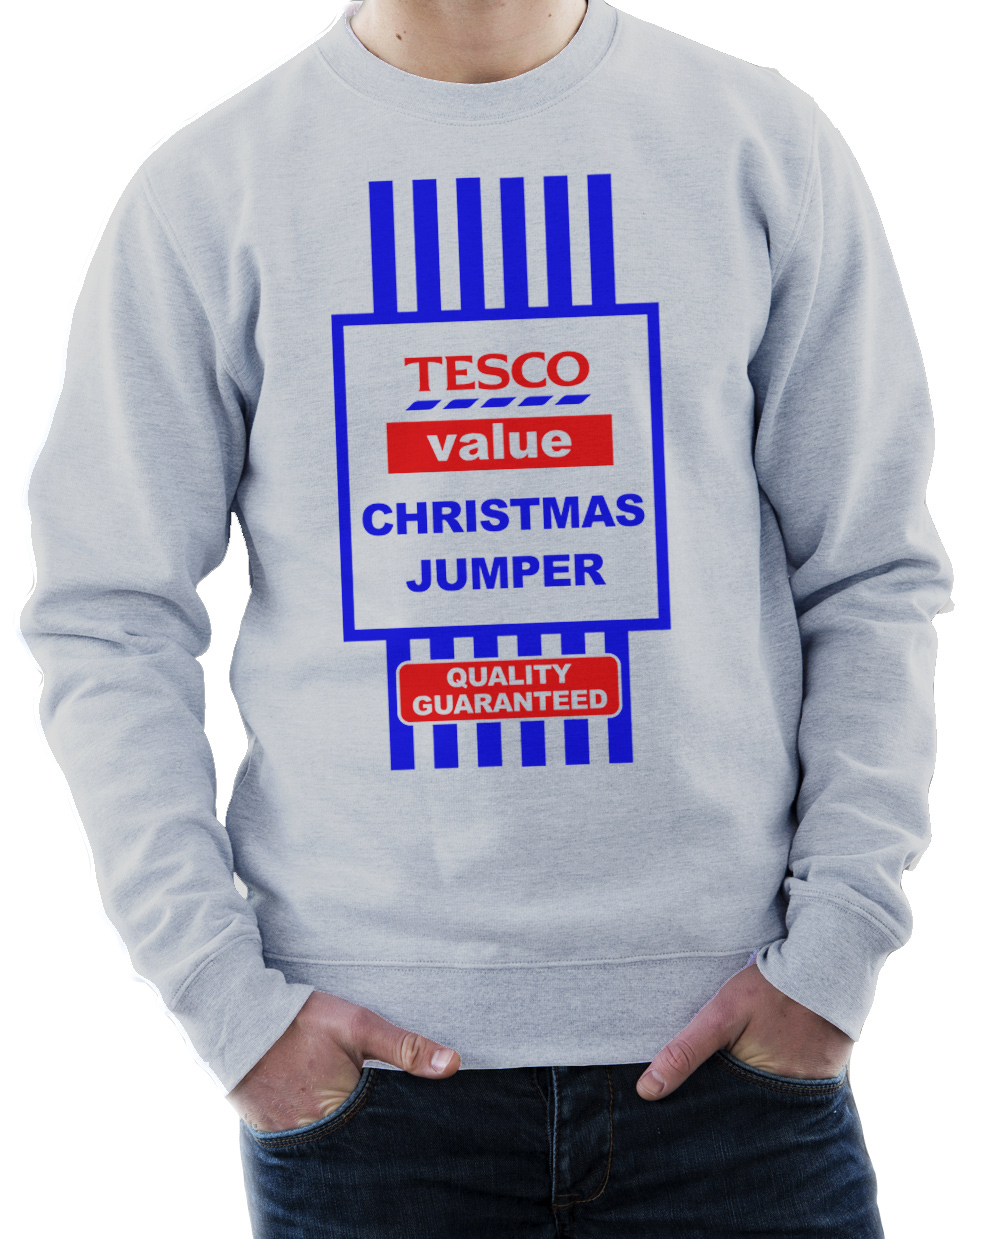 funny christmas jumpers tescou0027s value christmas jumper - sweatshirt funny xmas gift - 3 colours ZQVHWAO